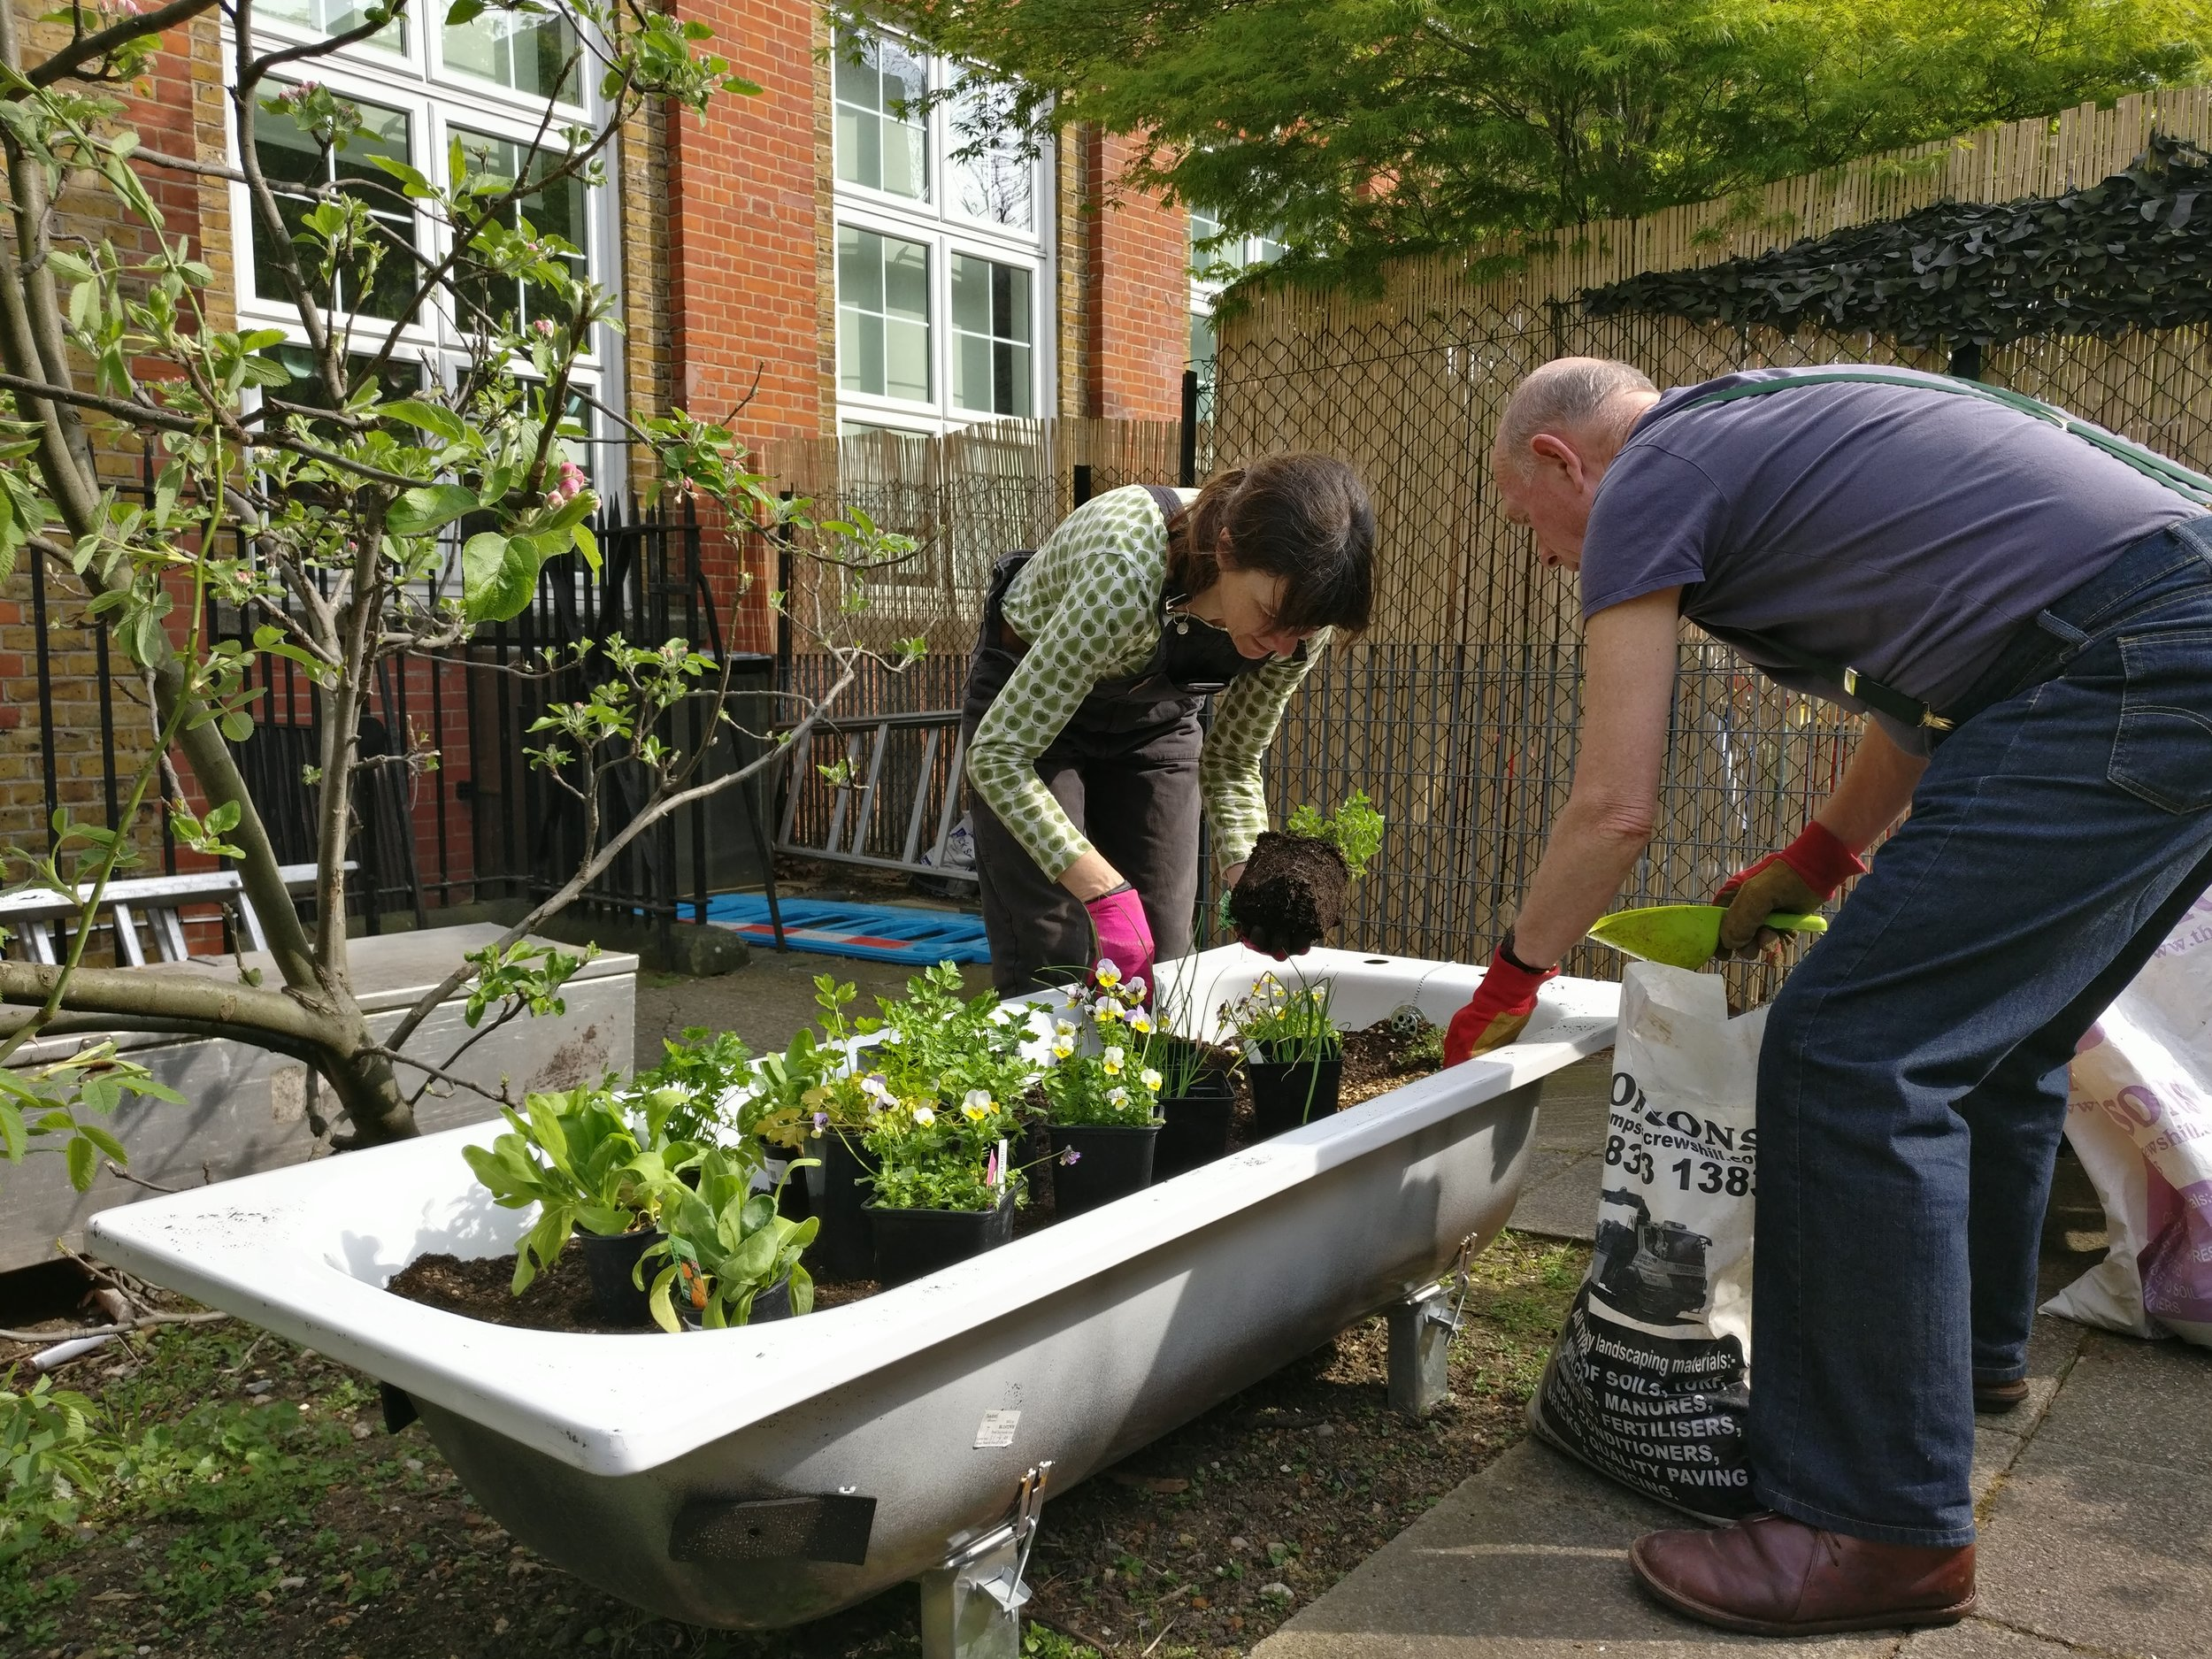 Planting at New City College as part of the Adopt a Tub project